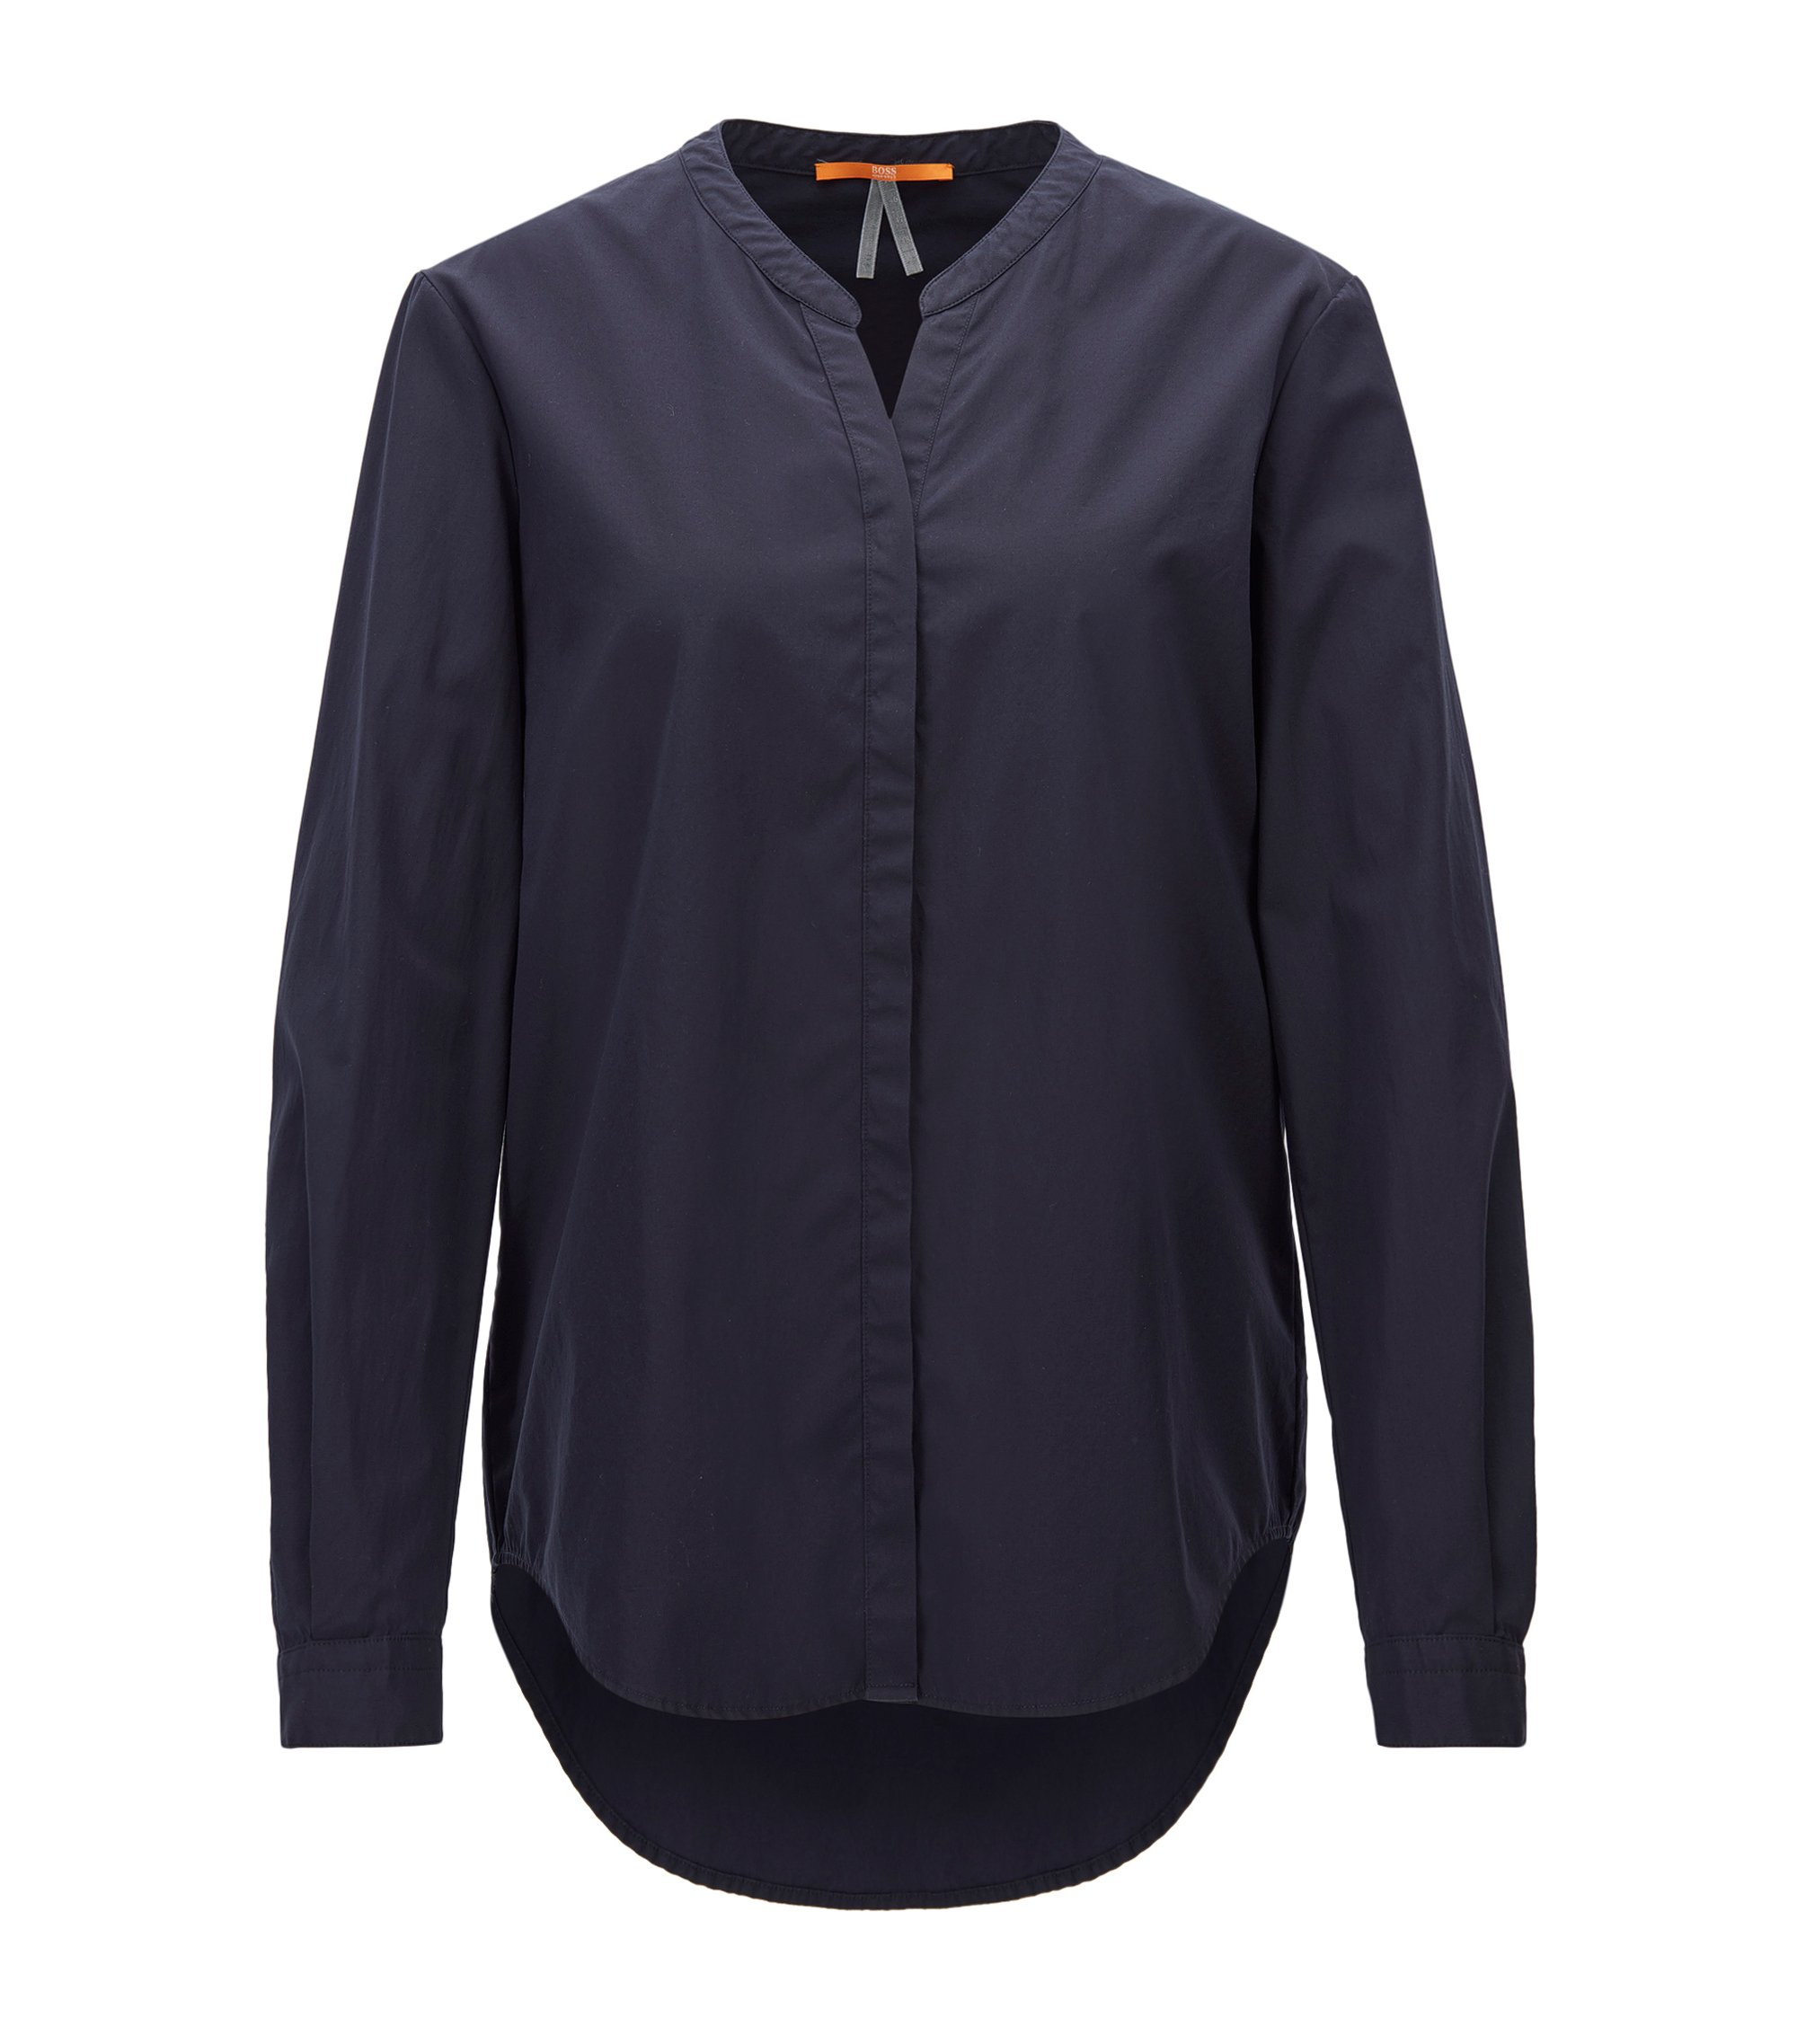 Camicia in cotone relaxed fit con colletto rialzato, Blu scuro